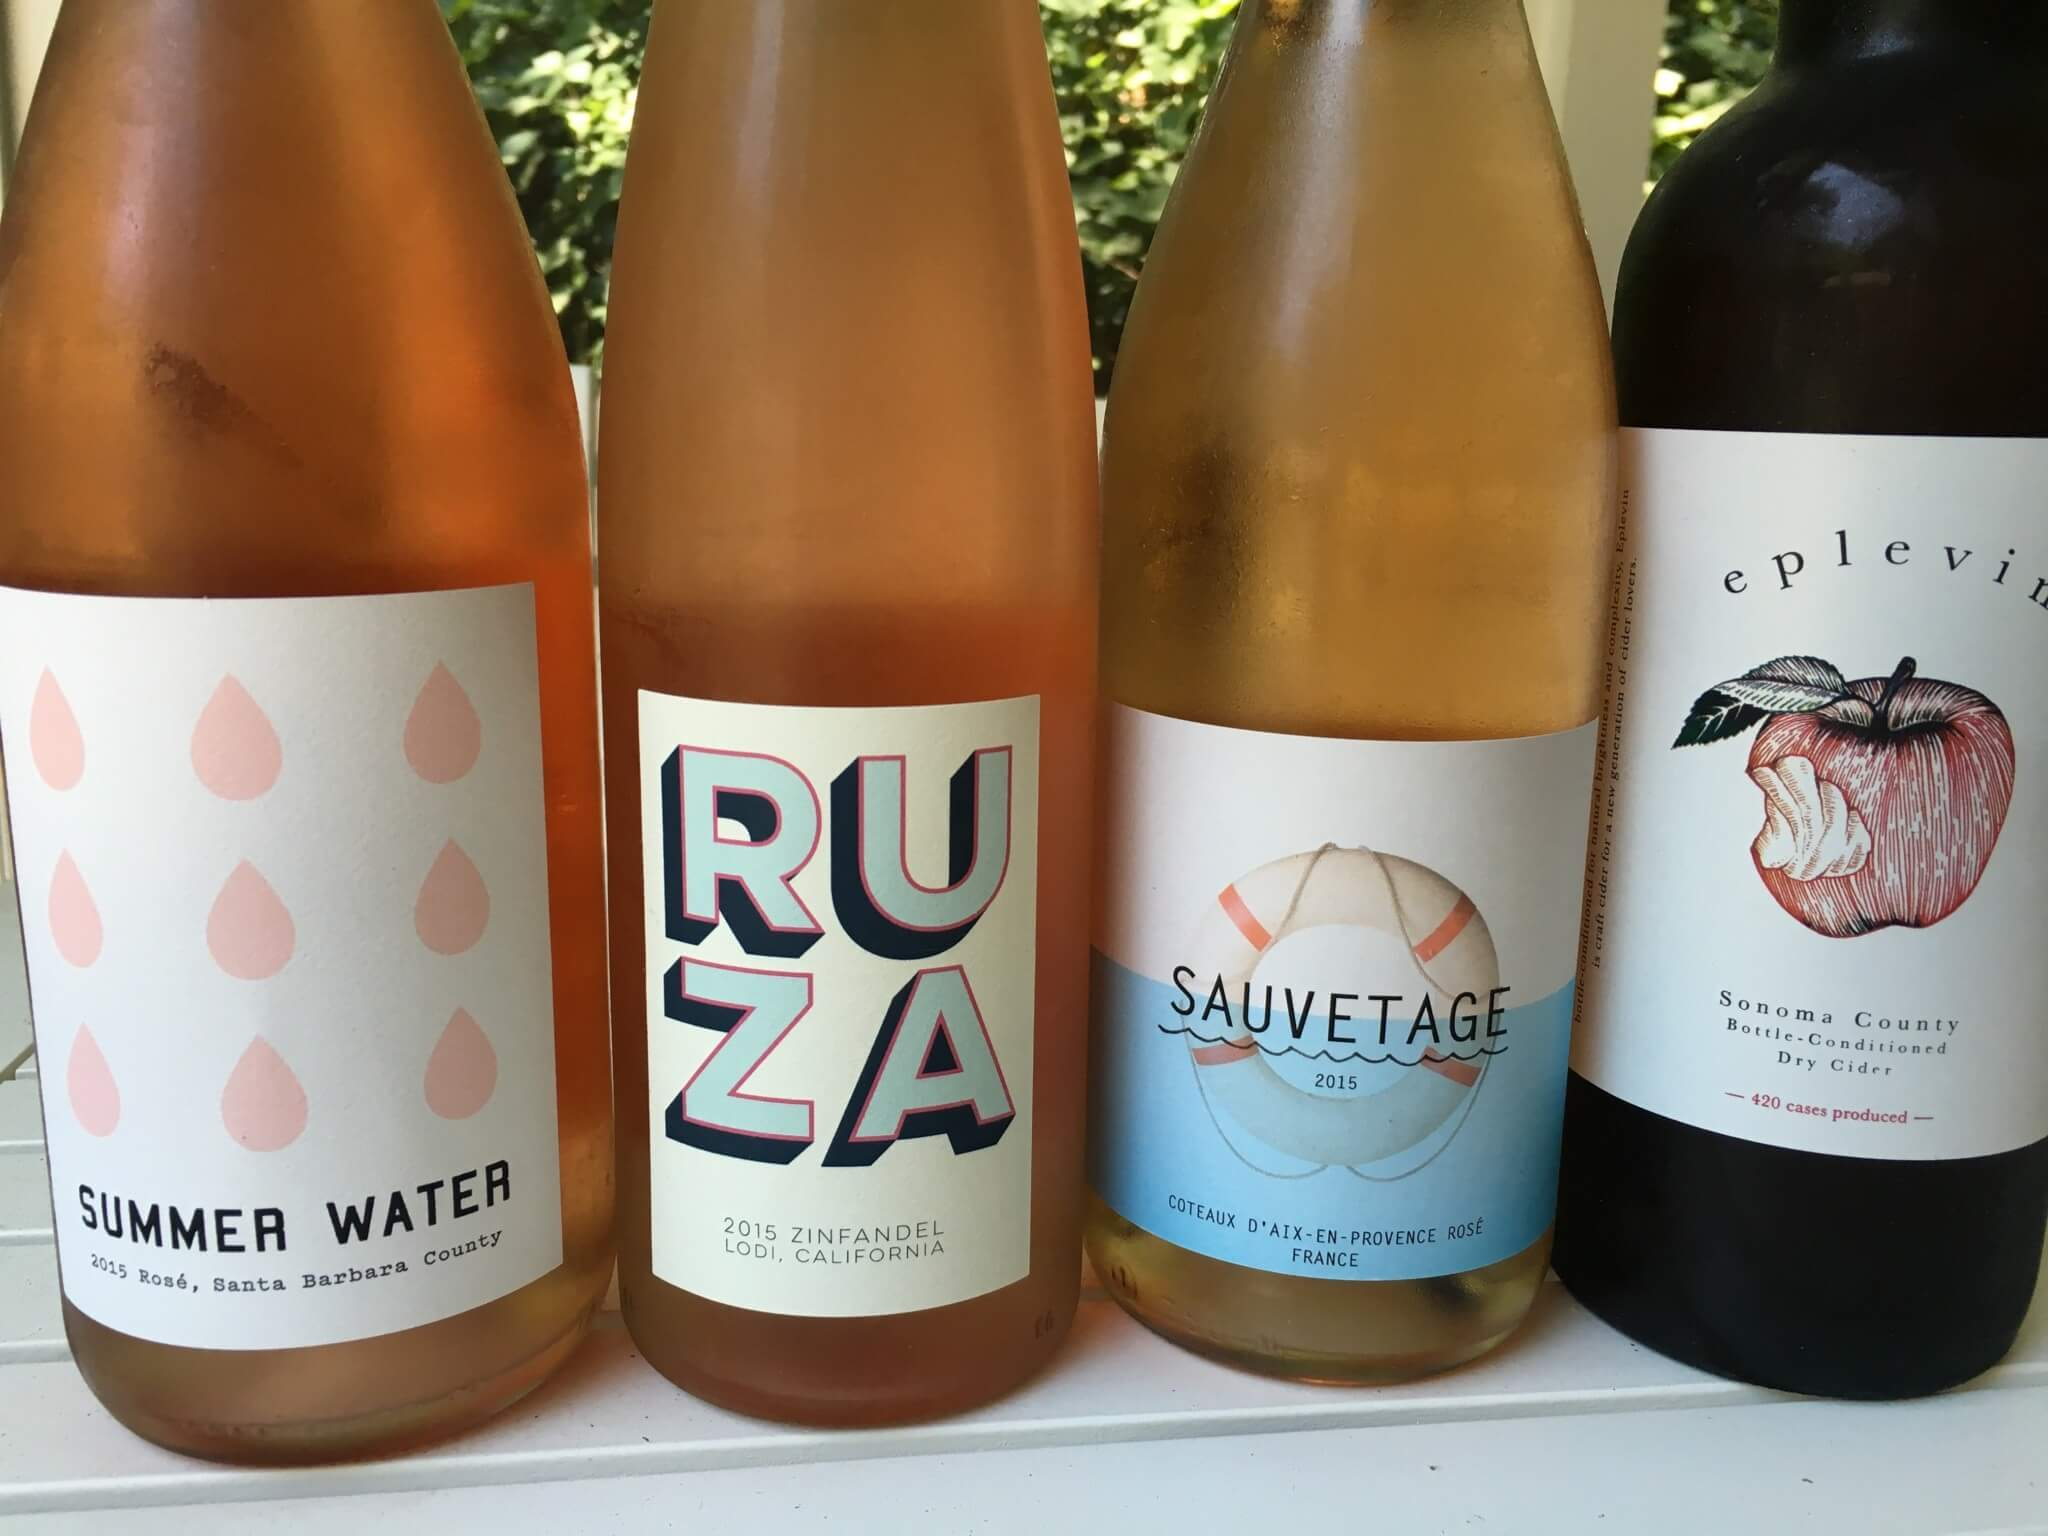 Winc (formerly Club W) June 2016 Subscription Box Review & $20 Off Coupon